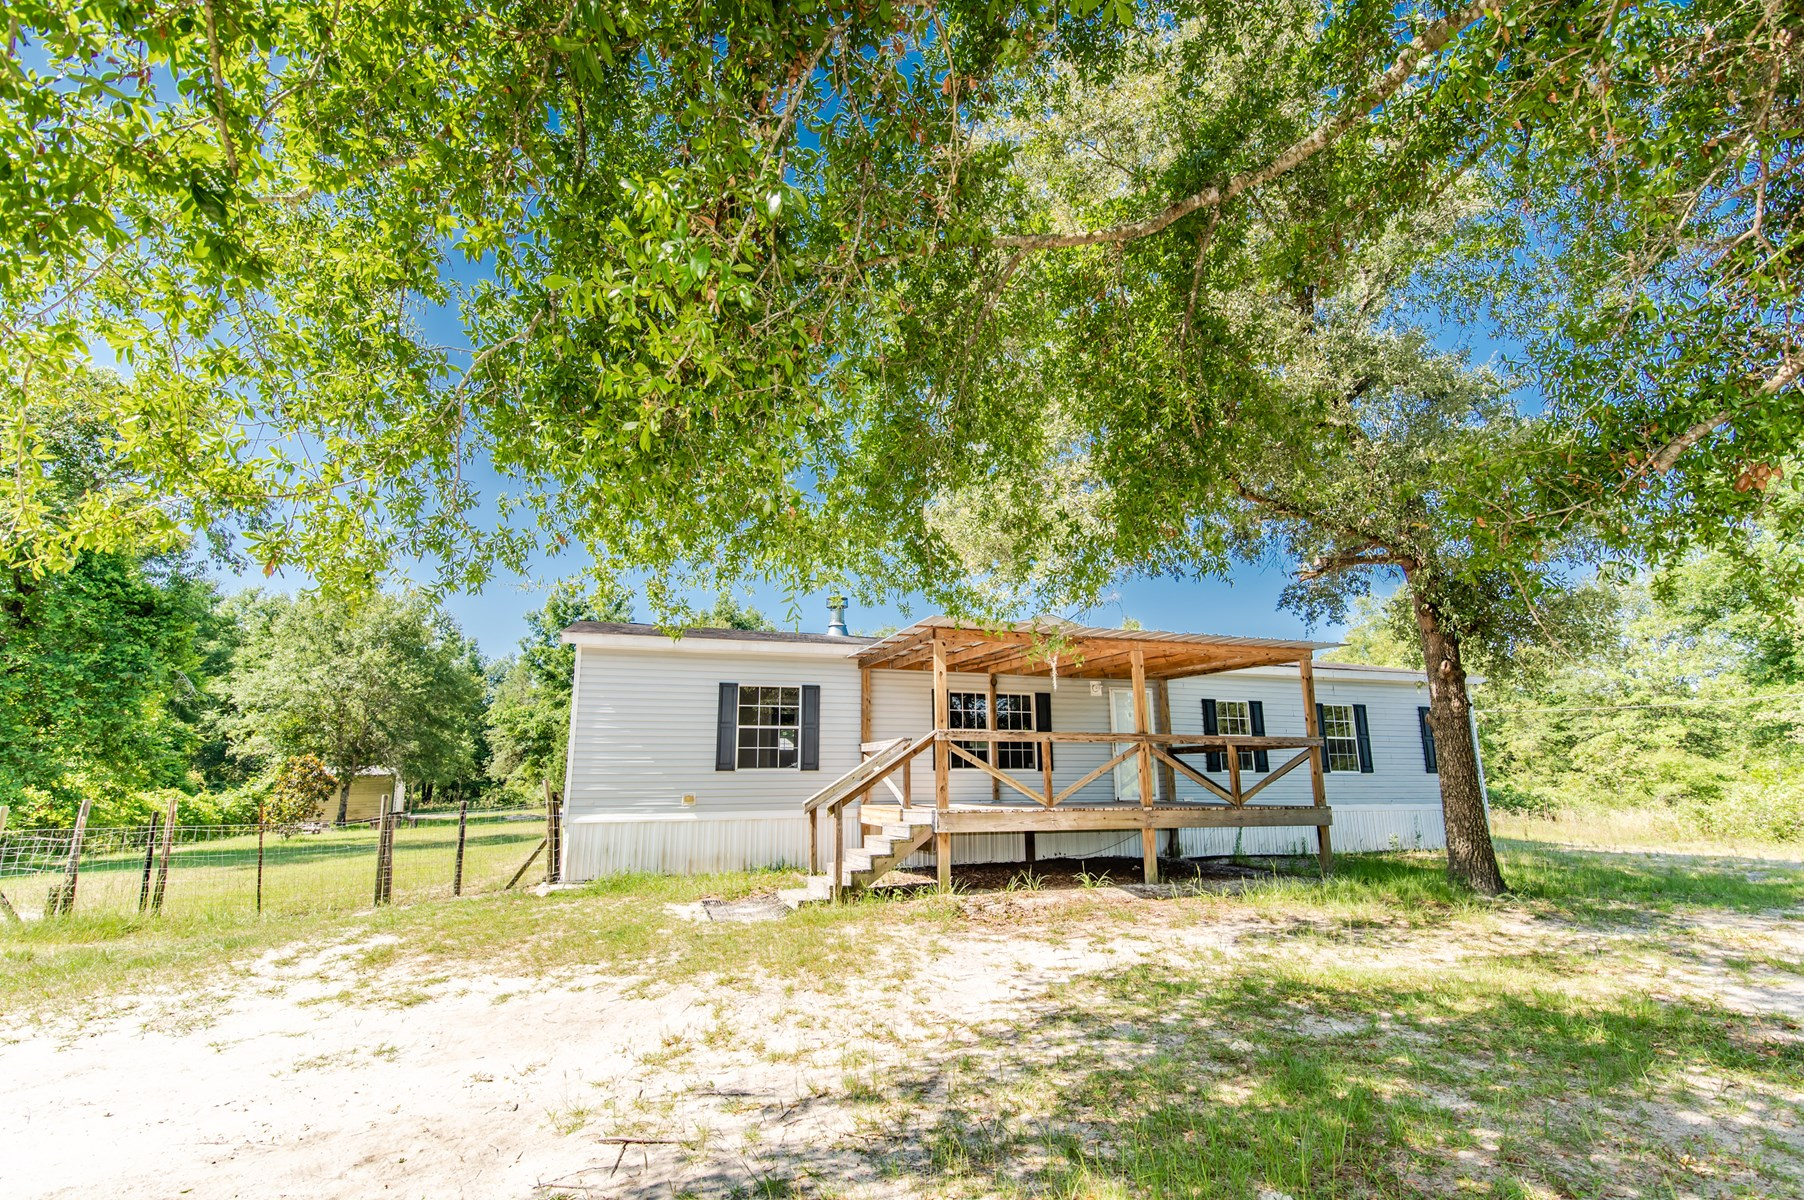 HOME ON 10 ACRES IN FORT WHITE, FL